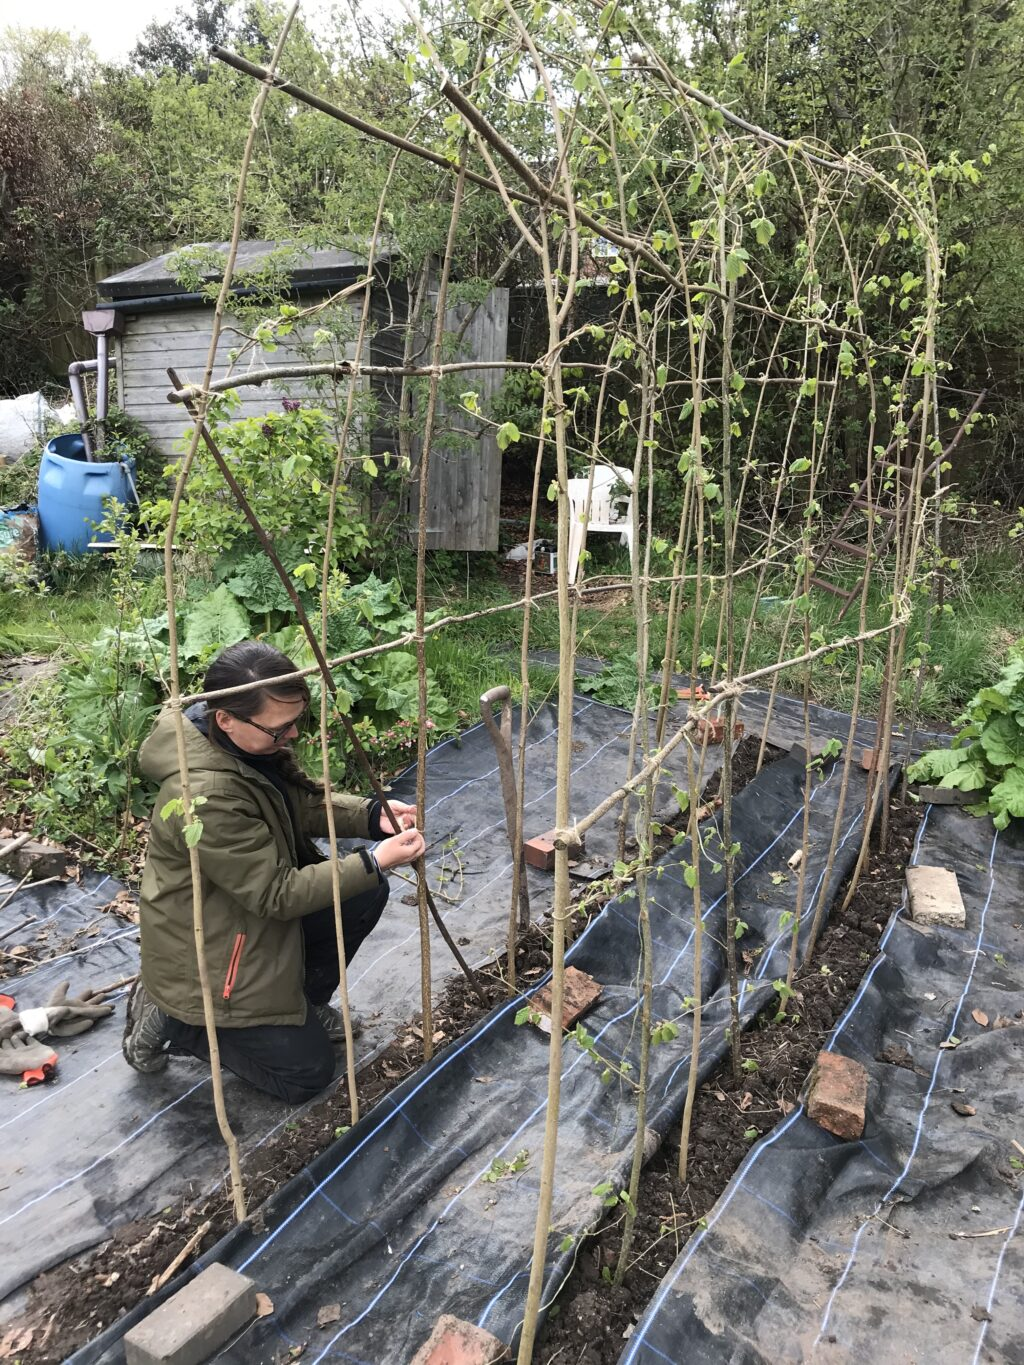 Emma builds a sweet pea arch with coppiced hazel poles at the Tuckshop Flowers plot.